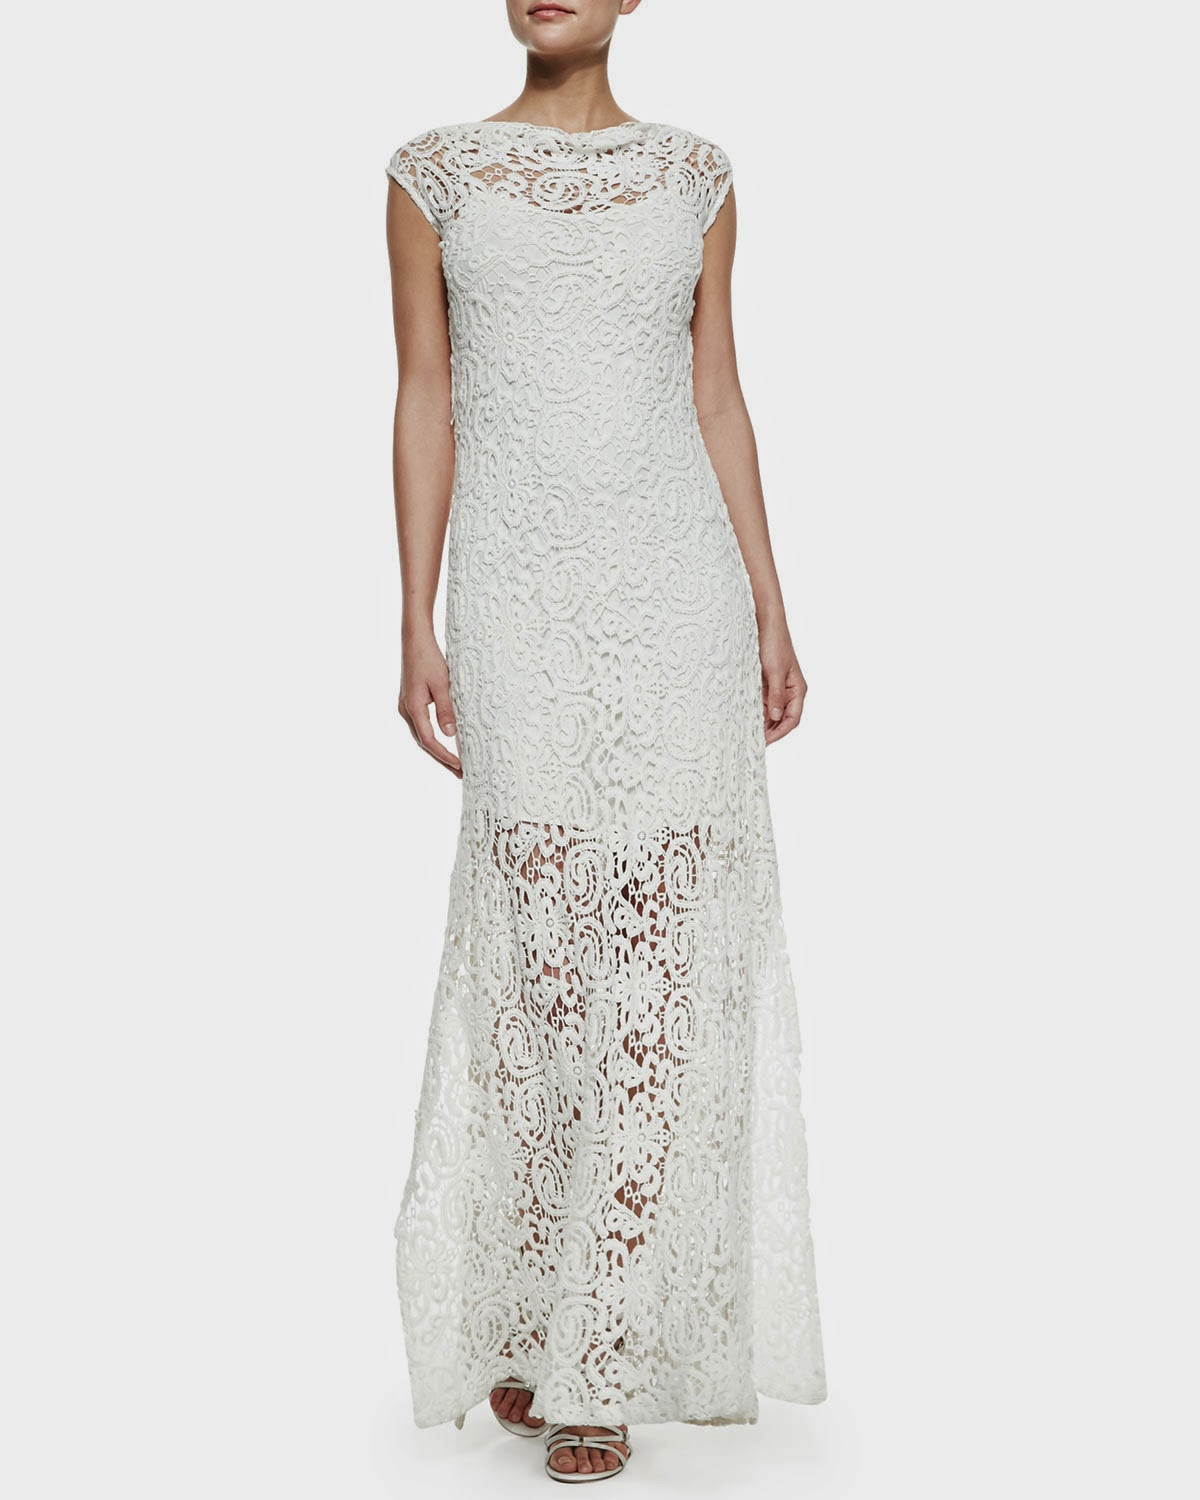 Miguelina Crochet Maxi Dress - Affordable Wedding Dresses: Crochet